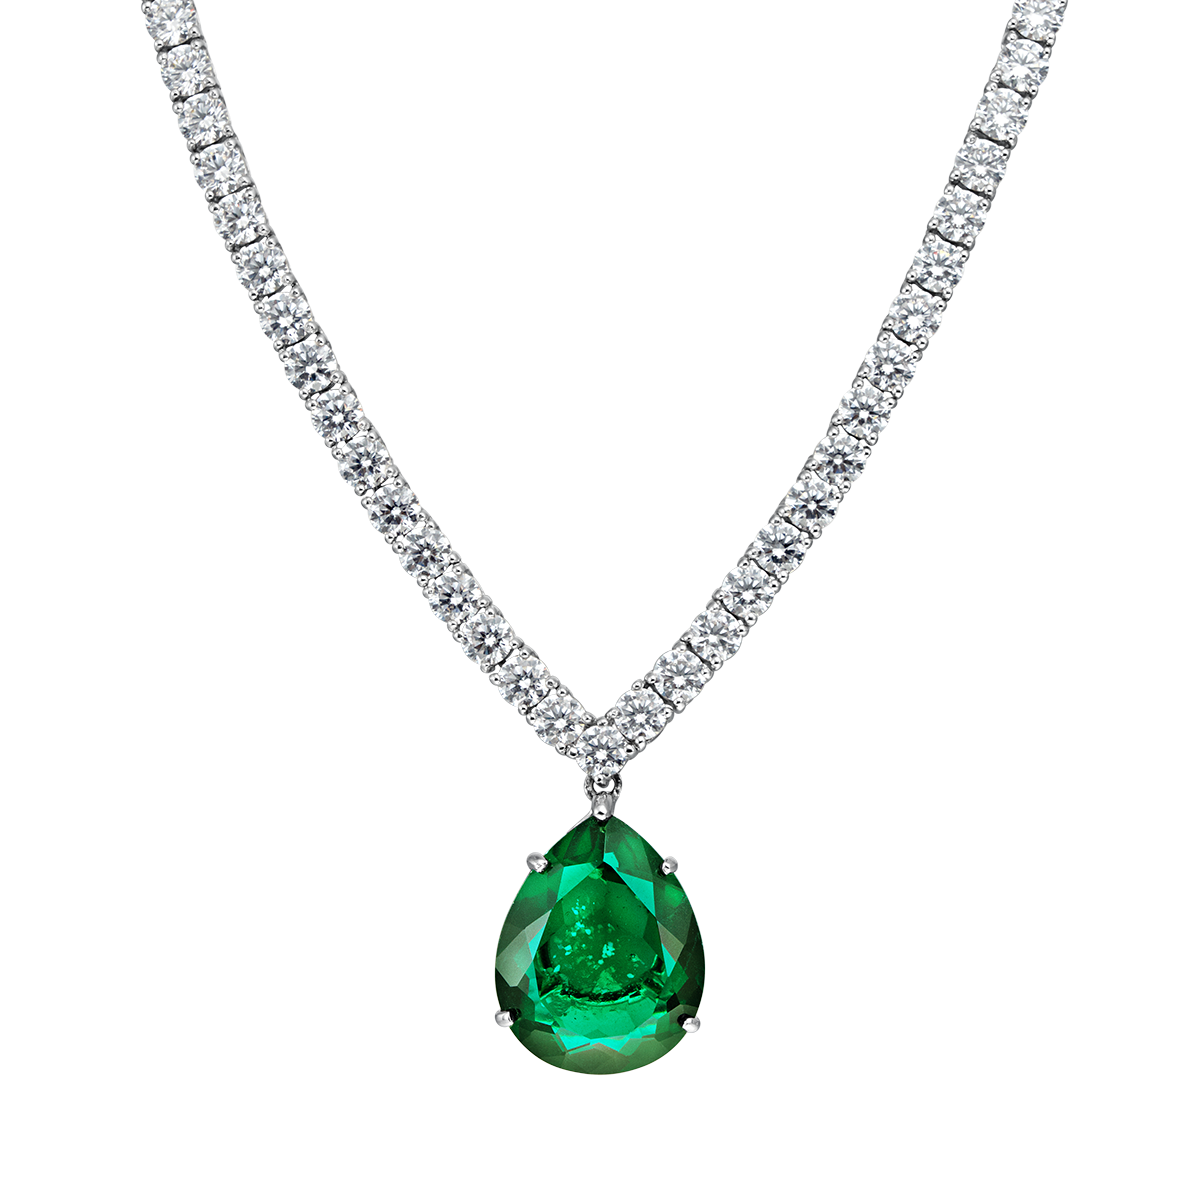 angelina formal green necklace ciro jewelry black tie #29344